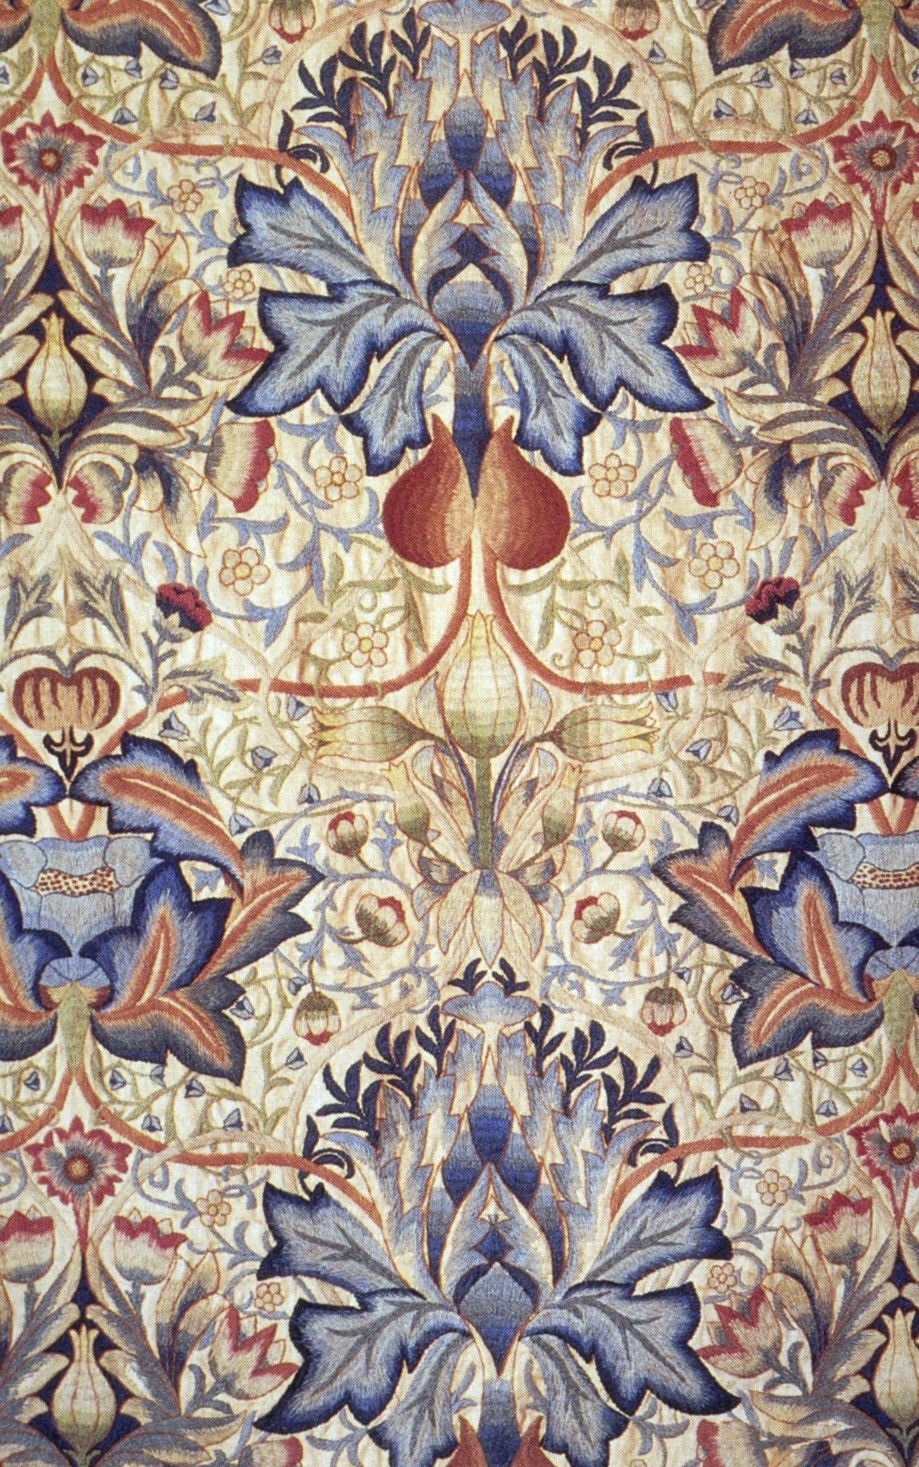 'Artichoke'  1887  William Morris & Co